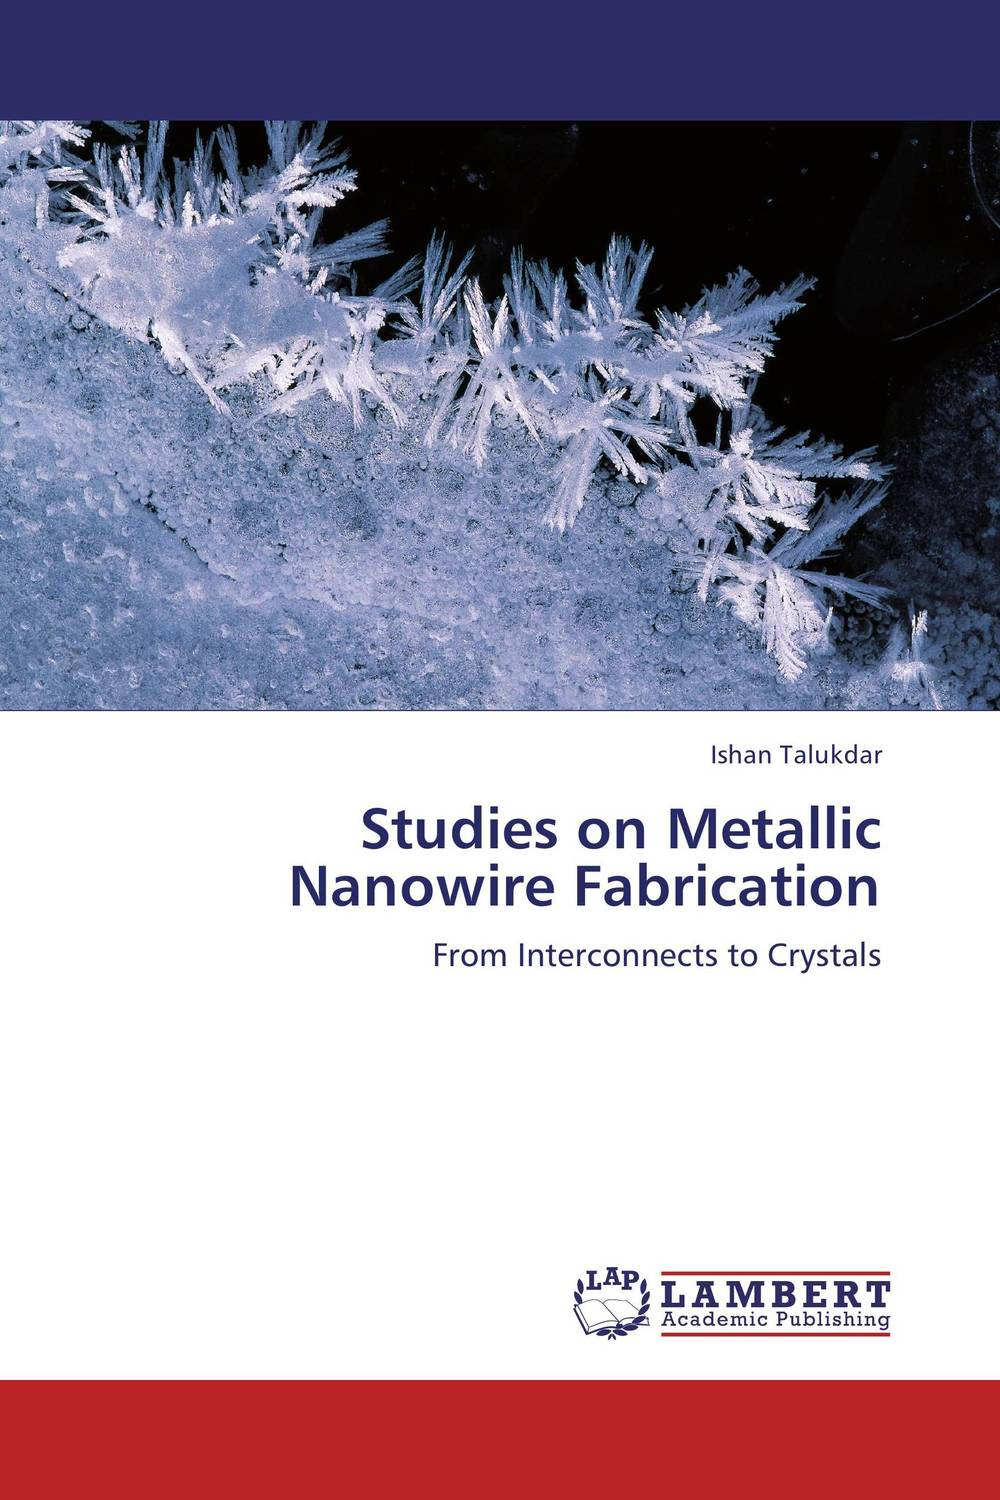 Studies on Metallic Nanowire Fabrication купить